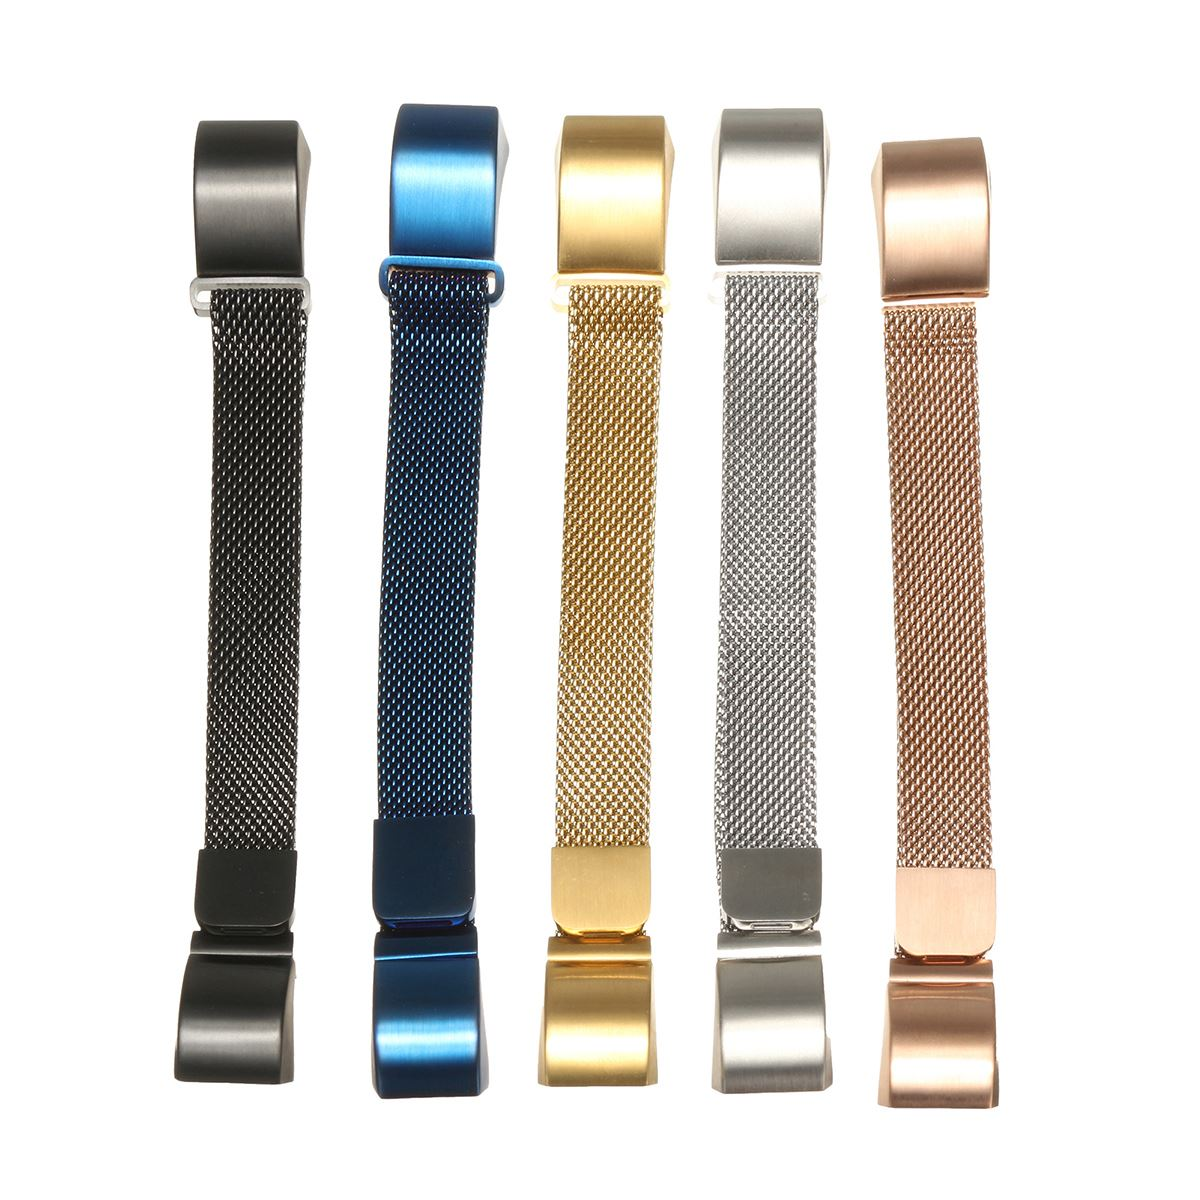 Luxury Milanese Loop Magnetic Stailess Steel Wrist WatchBand Strap + Frame Casual Watch Colorful Man/Woman Watchband crested luxury magnetic milanese loop wrist strap